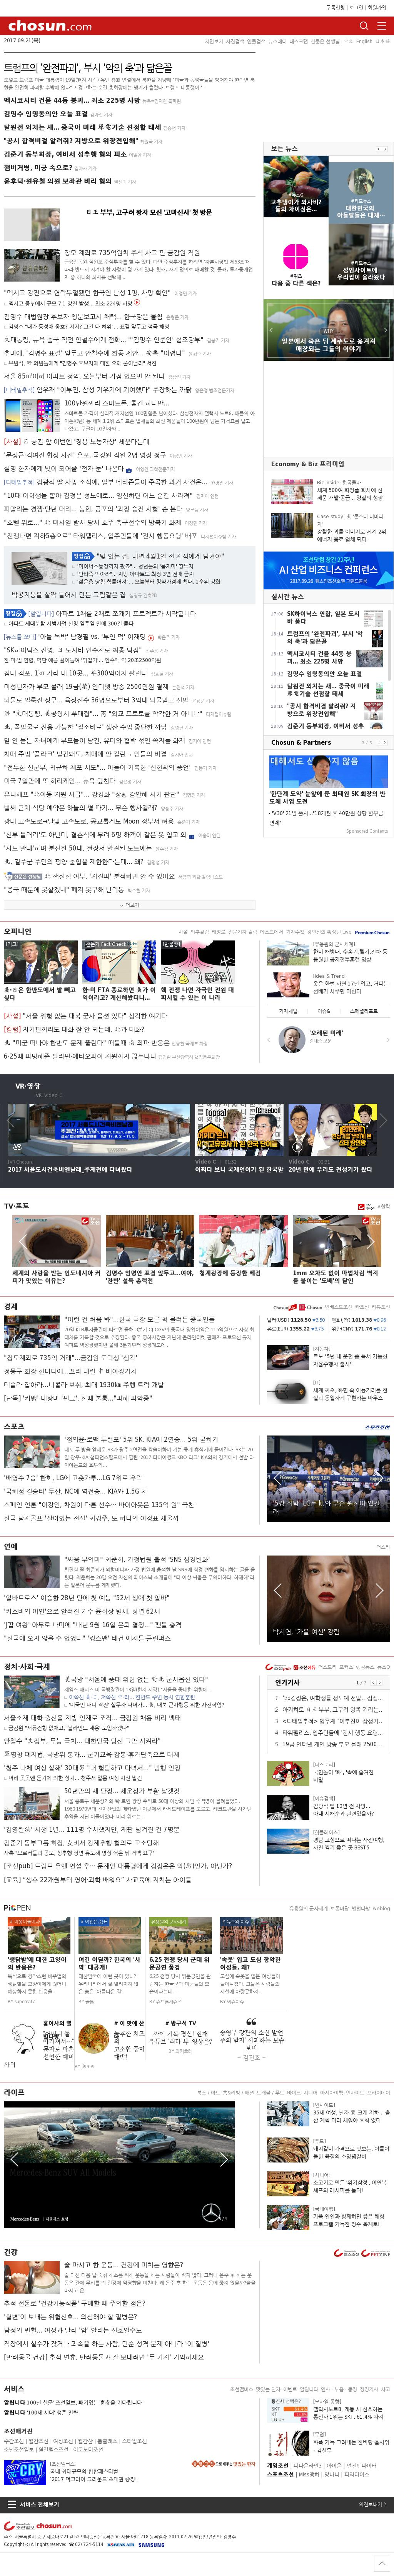 chosun.com at Wednesday Sept. 20, 2017, 8:02 p.m. UTC